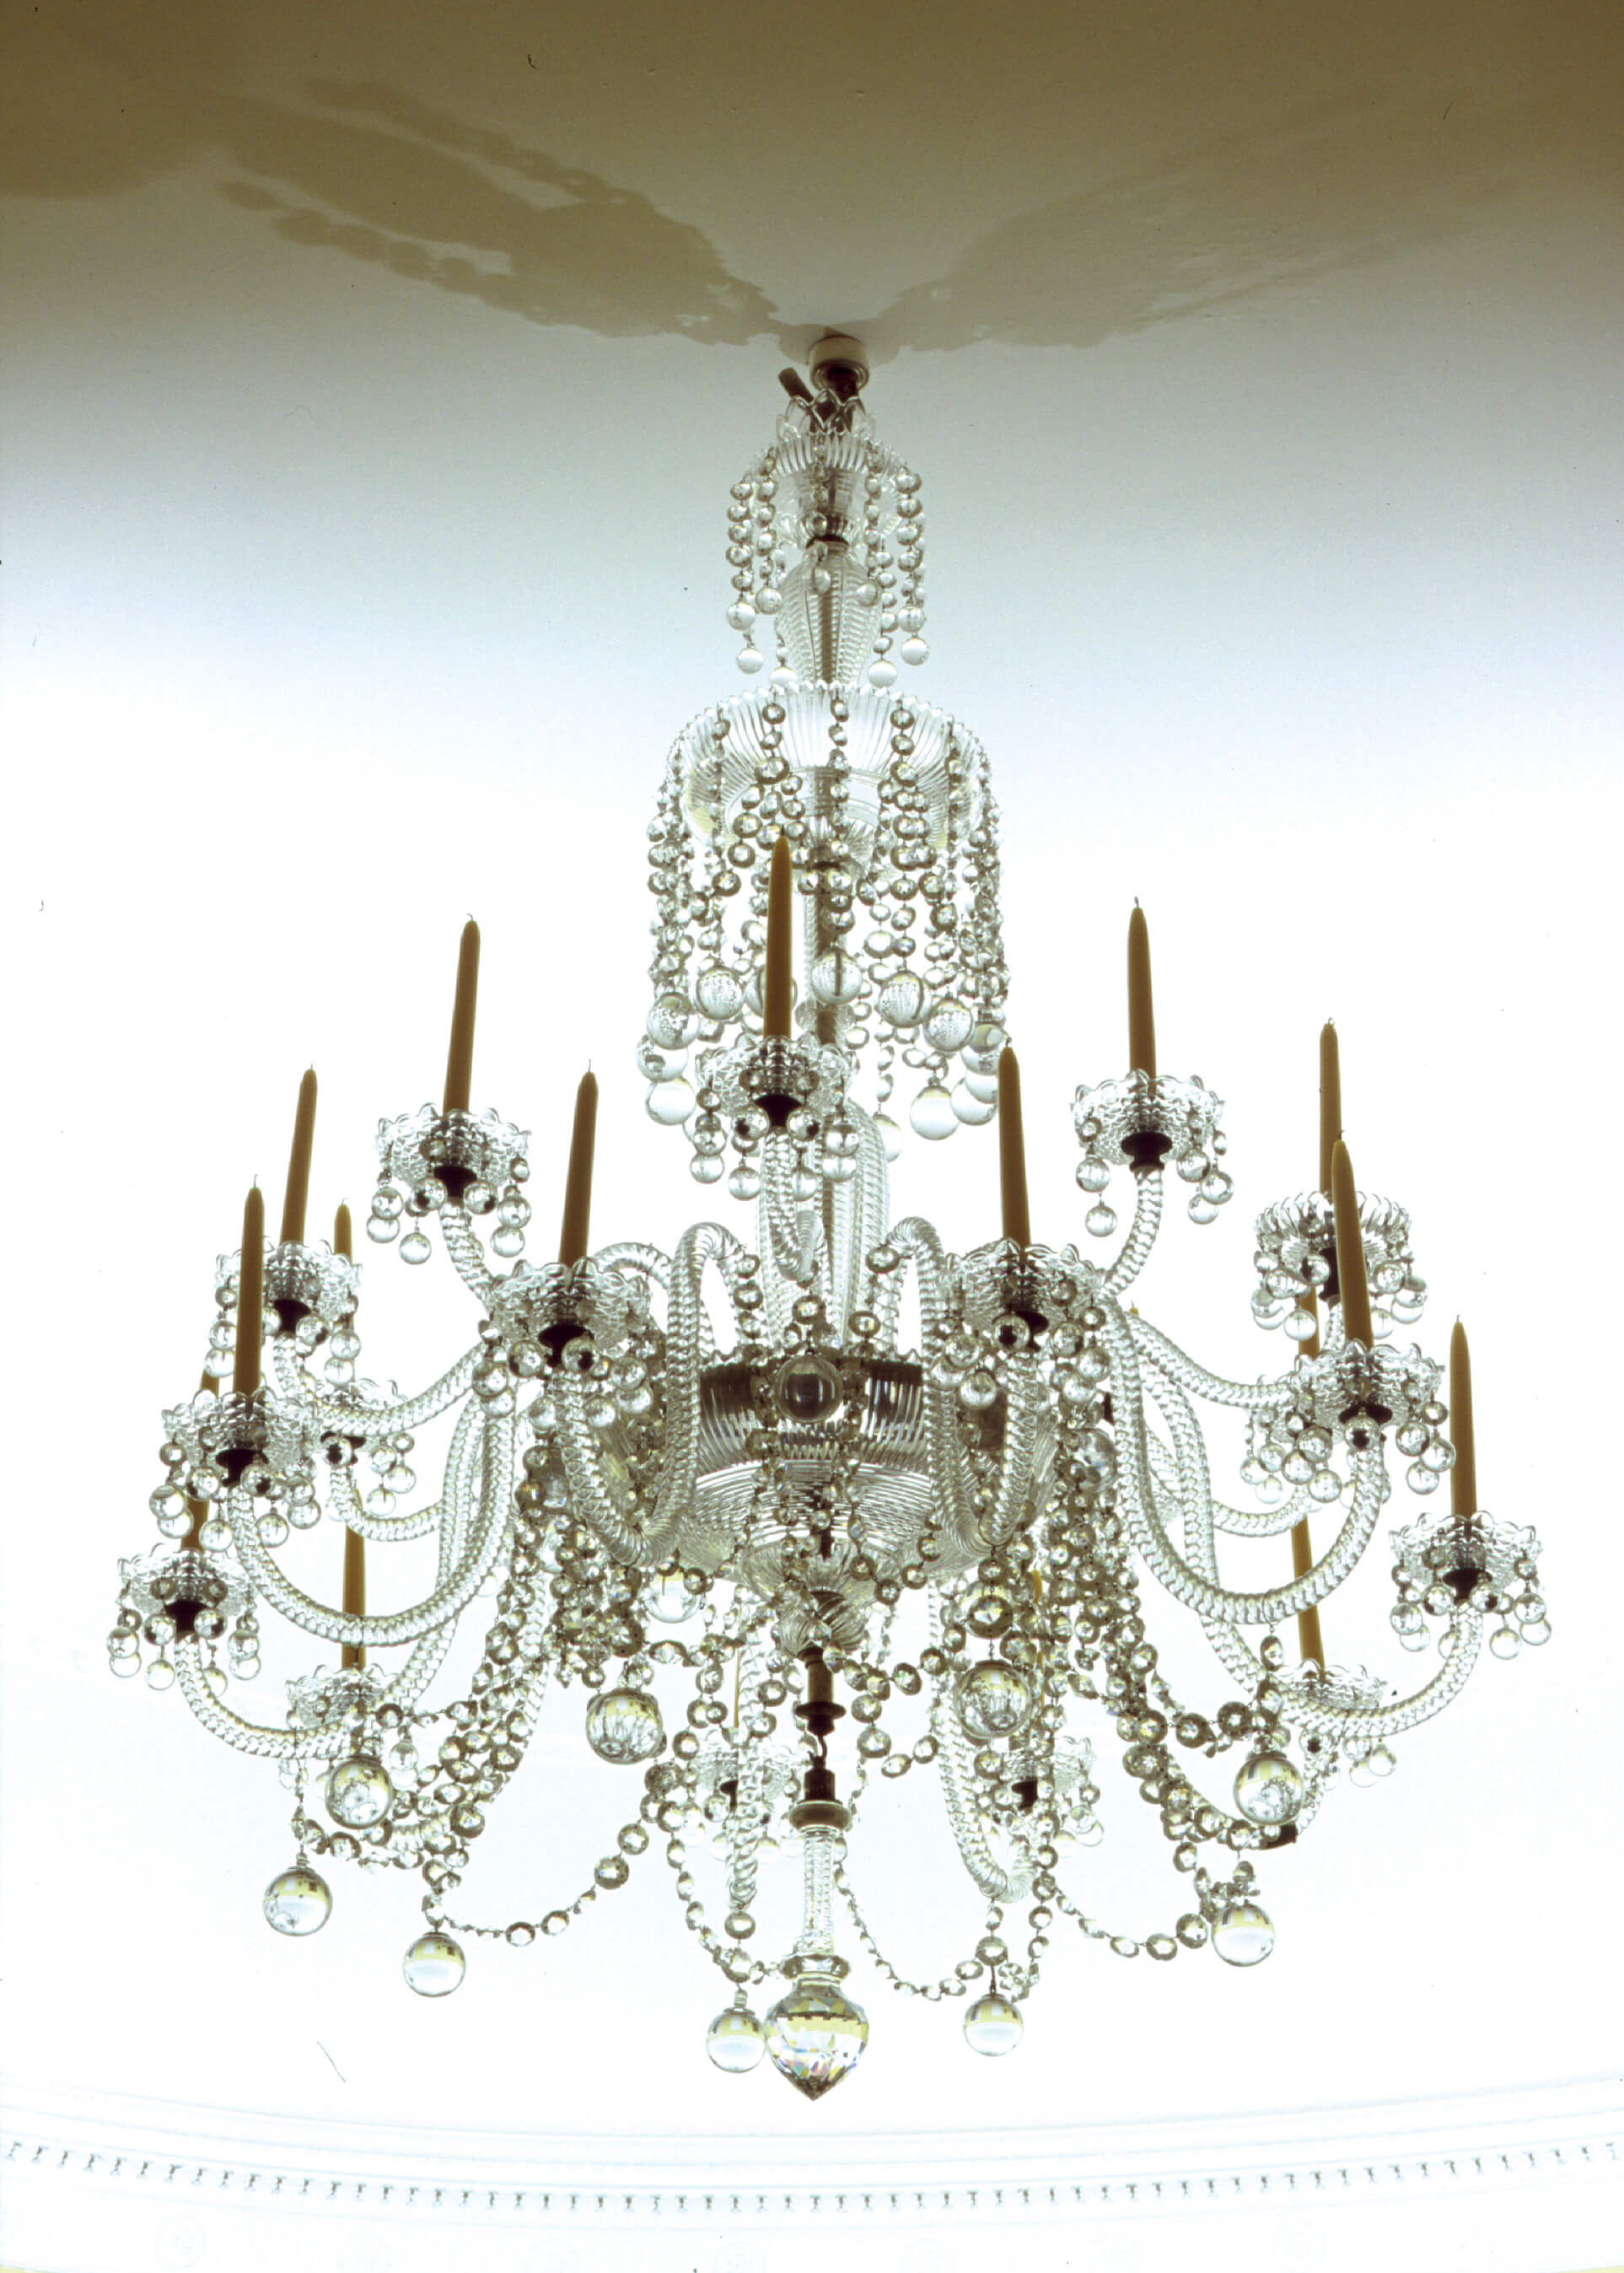 View picture of general henry knox museum montpelier thomaston - A Taste For Crystal You Thought You Knew Craftsmanship Until You Saw The General S Chandelier See Our Collections Knox Museum Collection